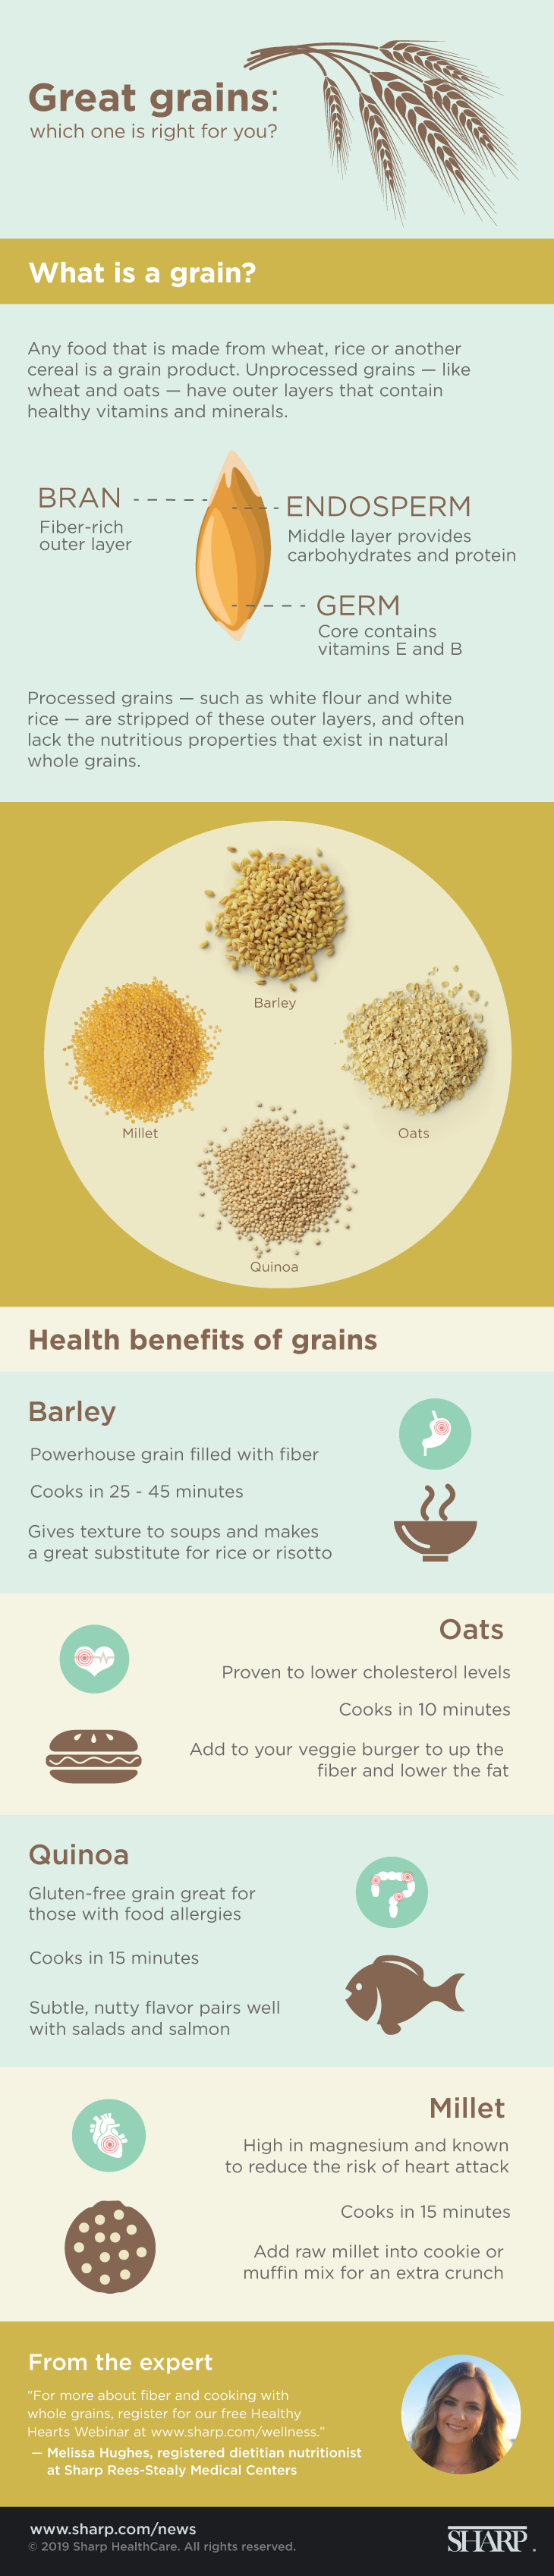 Great grains: what grain is for you? (Infographic) PNG